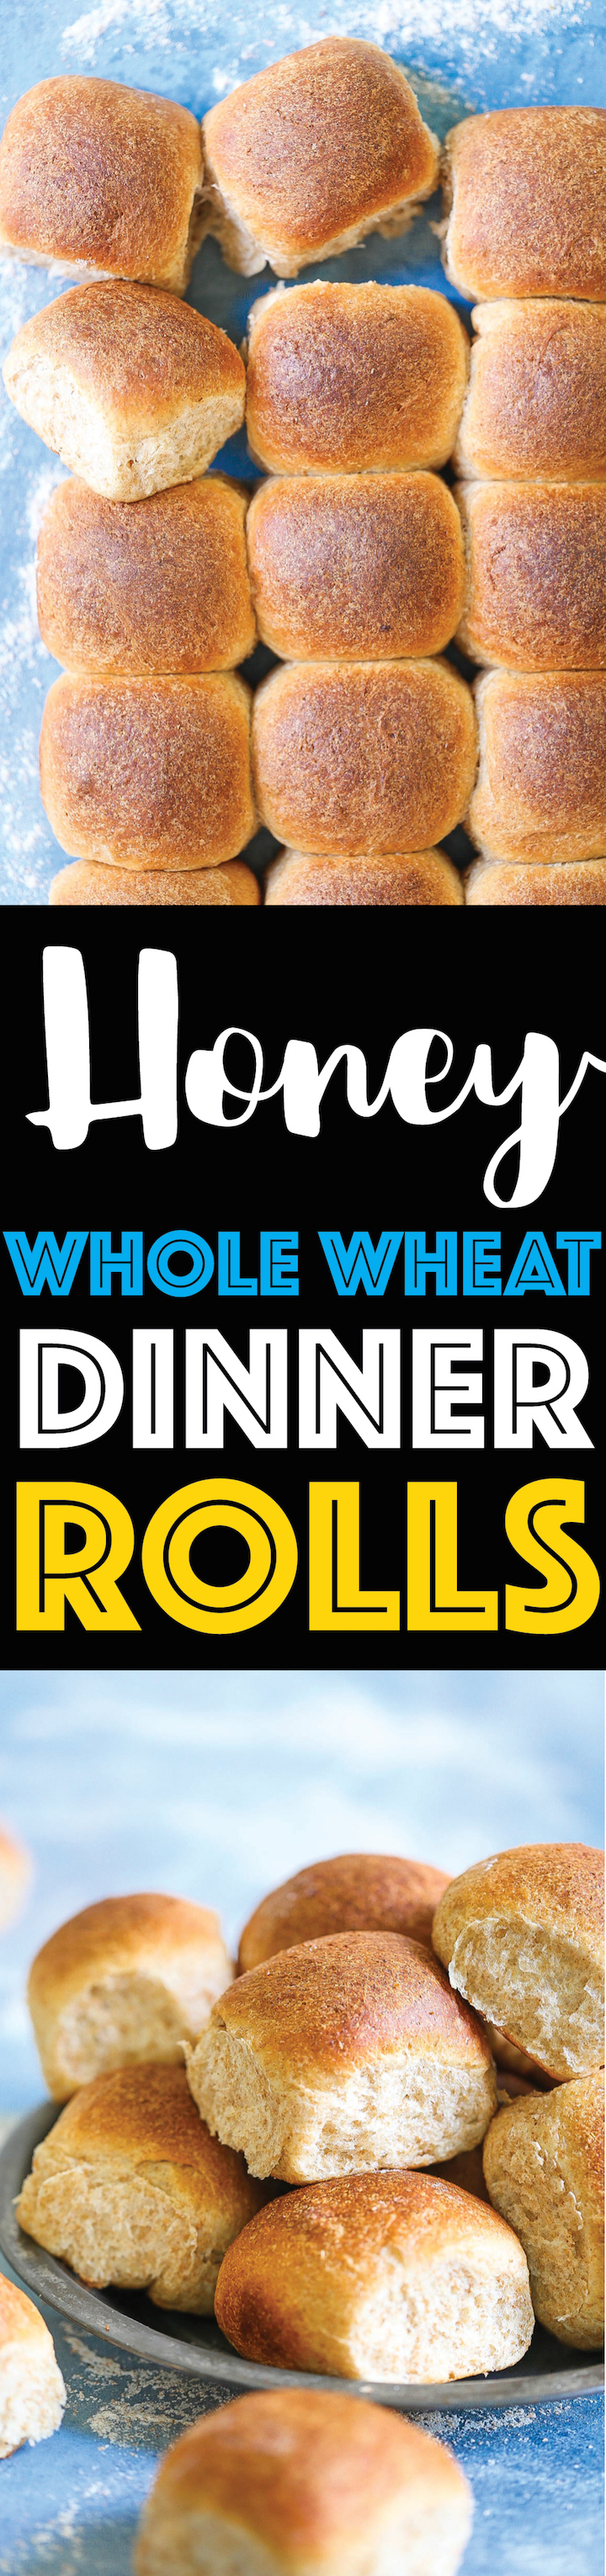 Honey Whole Wheat Dinner Rolls - So soft, fluffy and perfectly golden brown! These may just be the BEST dinner rolls you will ever have! And these are so much healthier than the traditional dinner rolls. Win-win situation here!